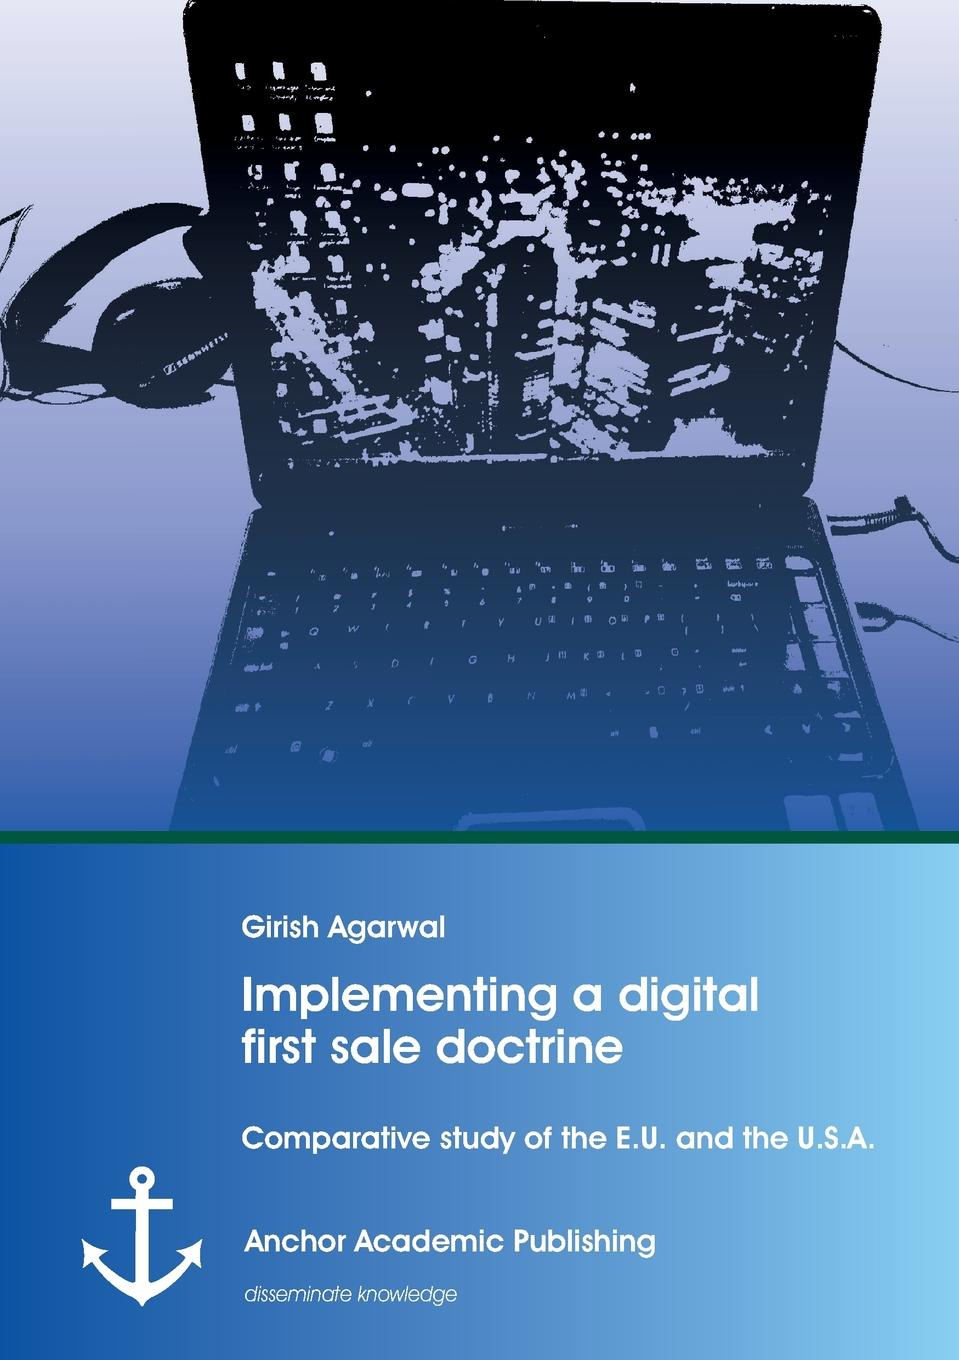 Girish Agarwal Implementing a digital first sale doctrine. Comparative study of the E.U. and the U.S.A. original 1pcs byv20 40 goods in stock